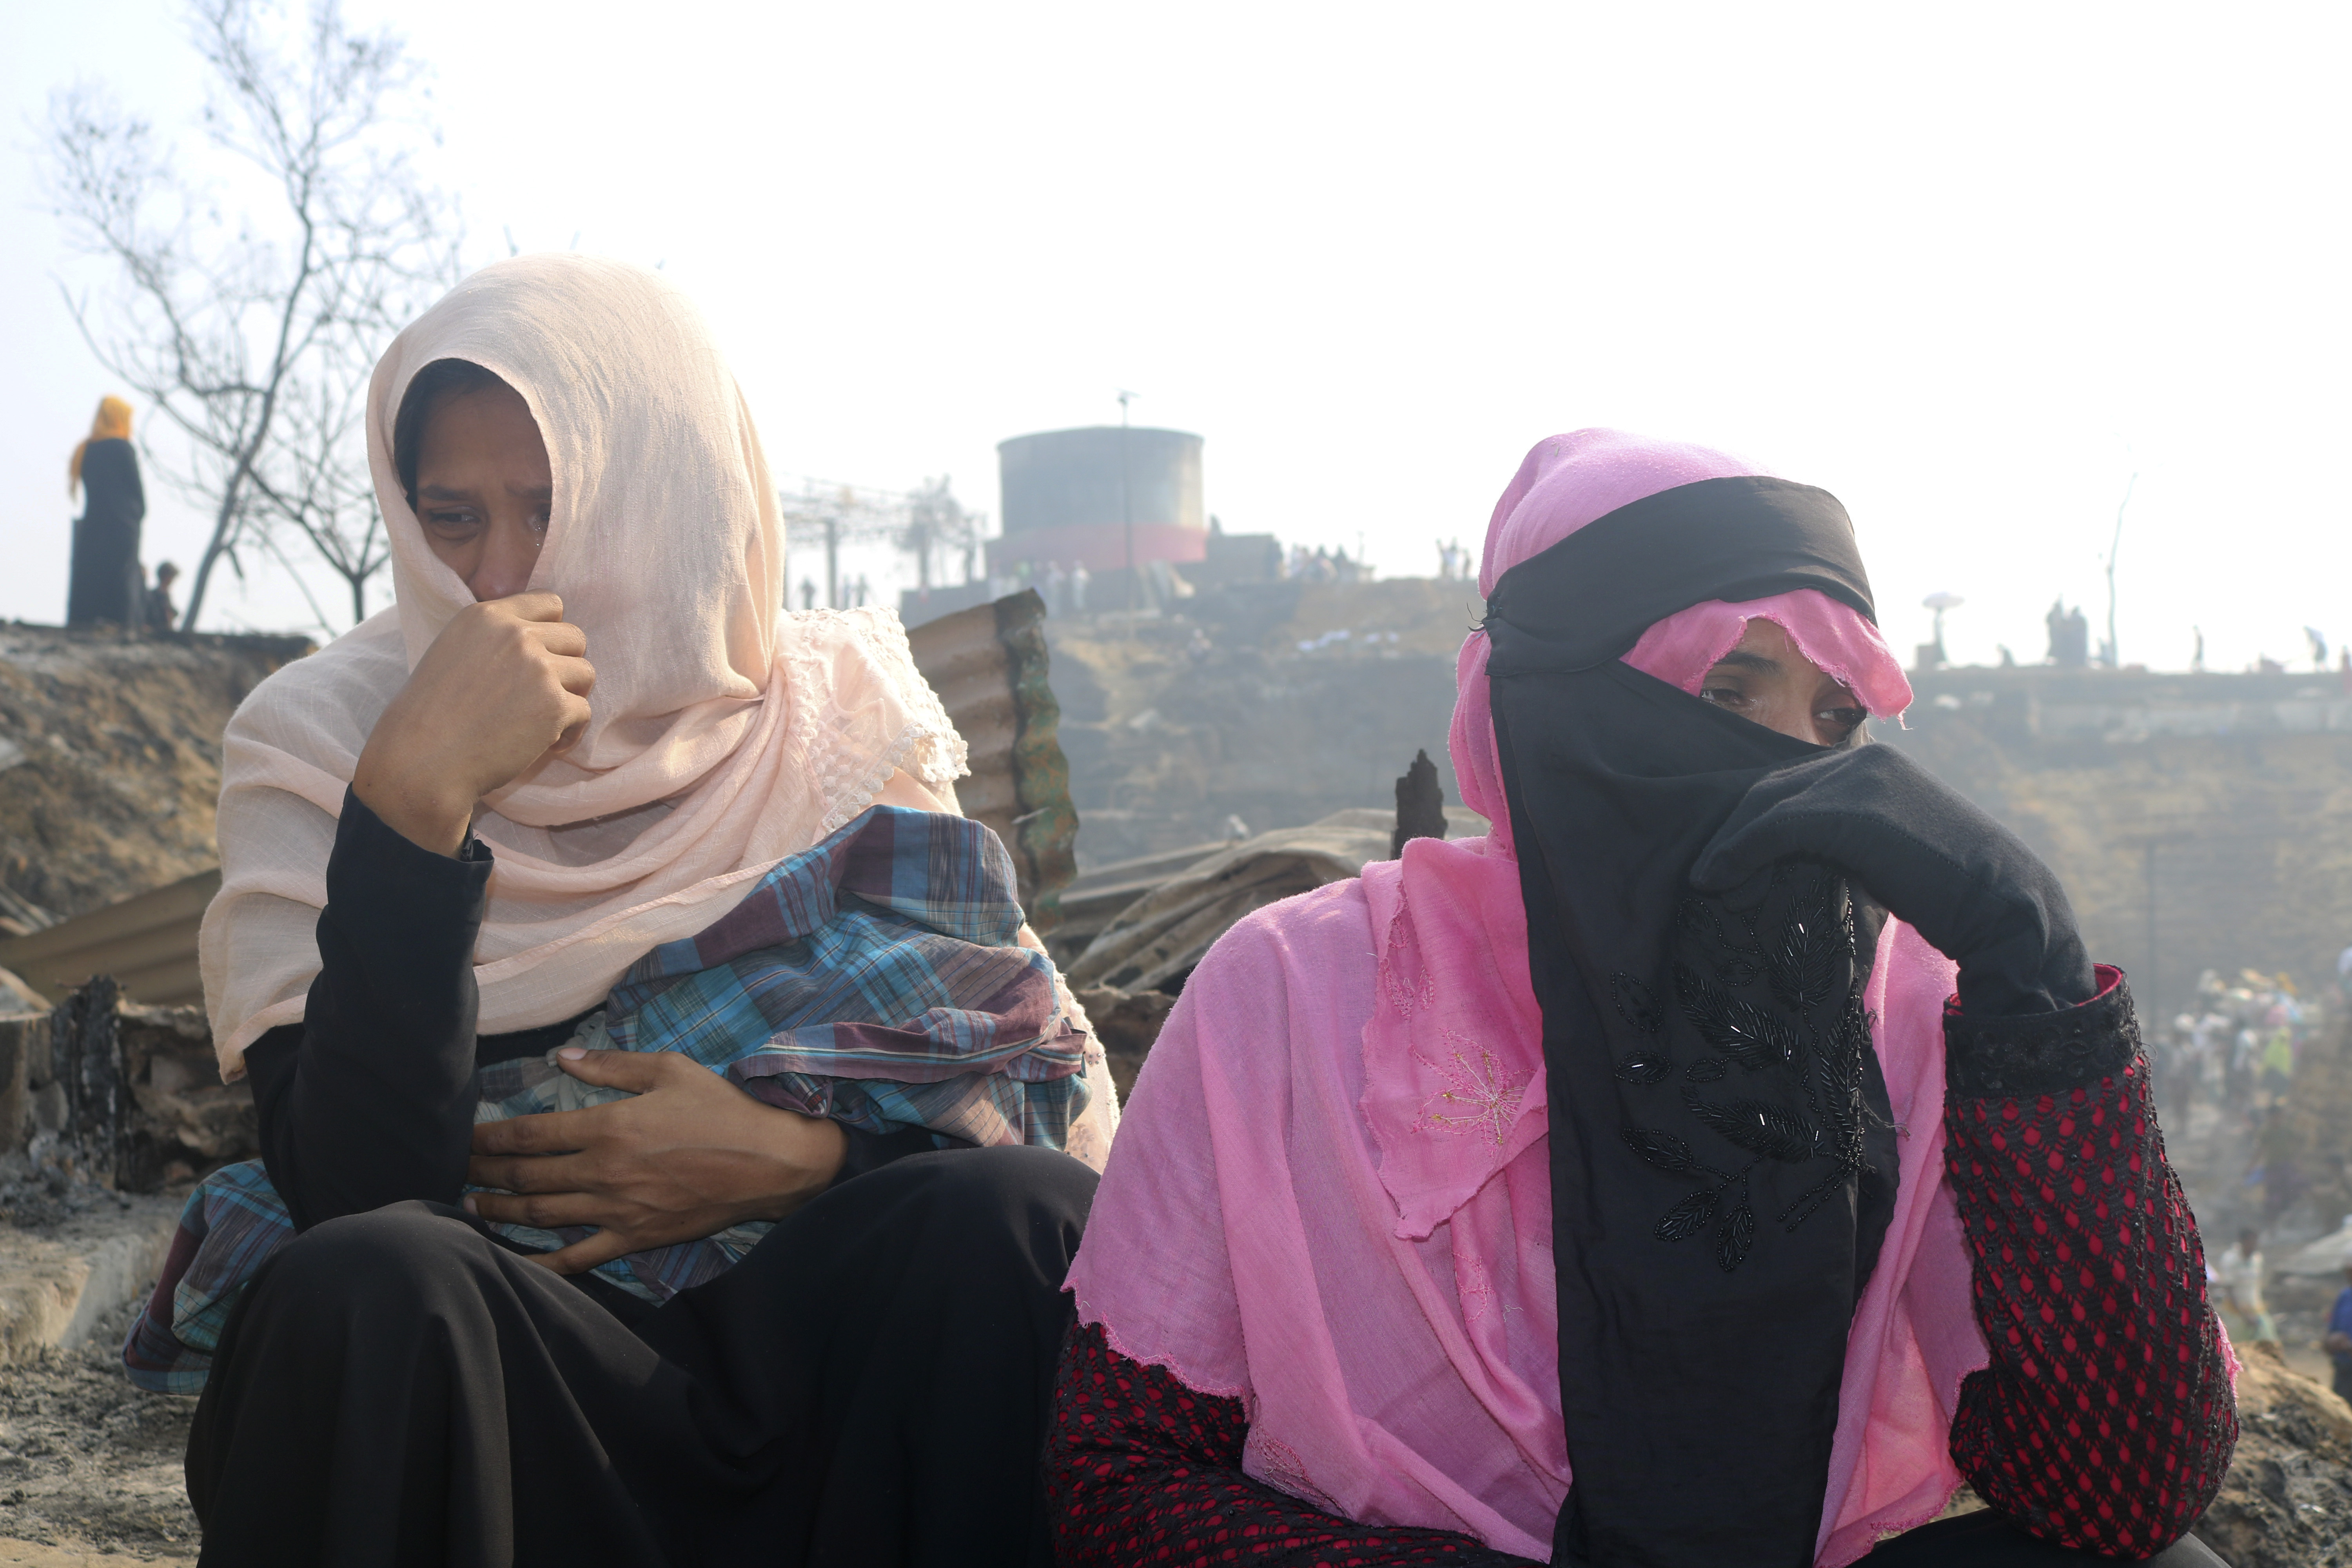 Rohingya refugees cry at the site of a fire at a refugee camp in Balukhali, southern Bangladesh, on Tuesday, March 23, 2021.